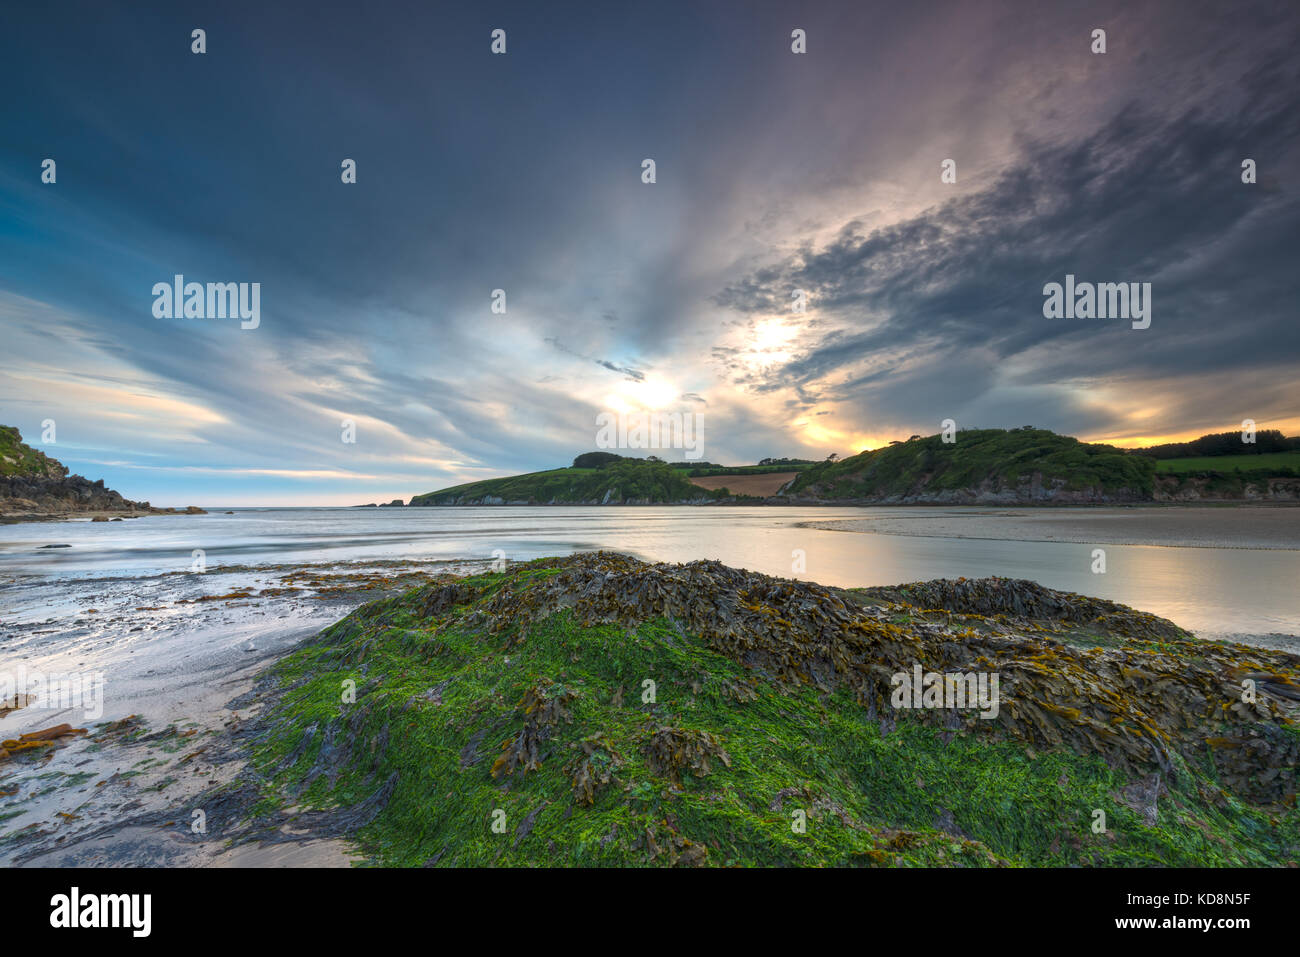 Wonwell Beach South Devon at the mouth of The River Erme. - Stock Image